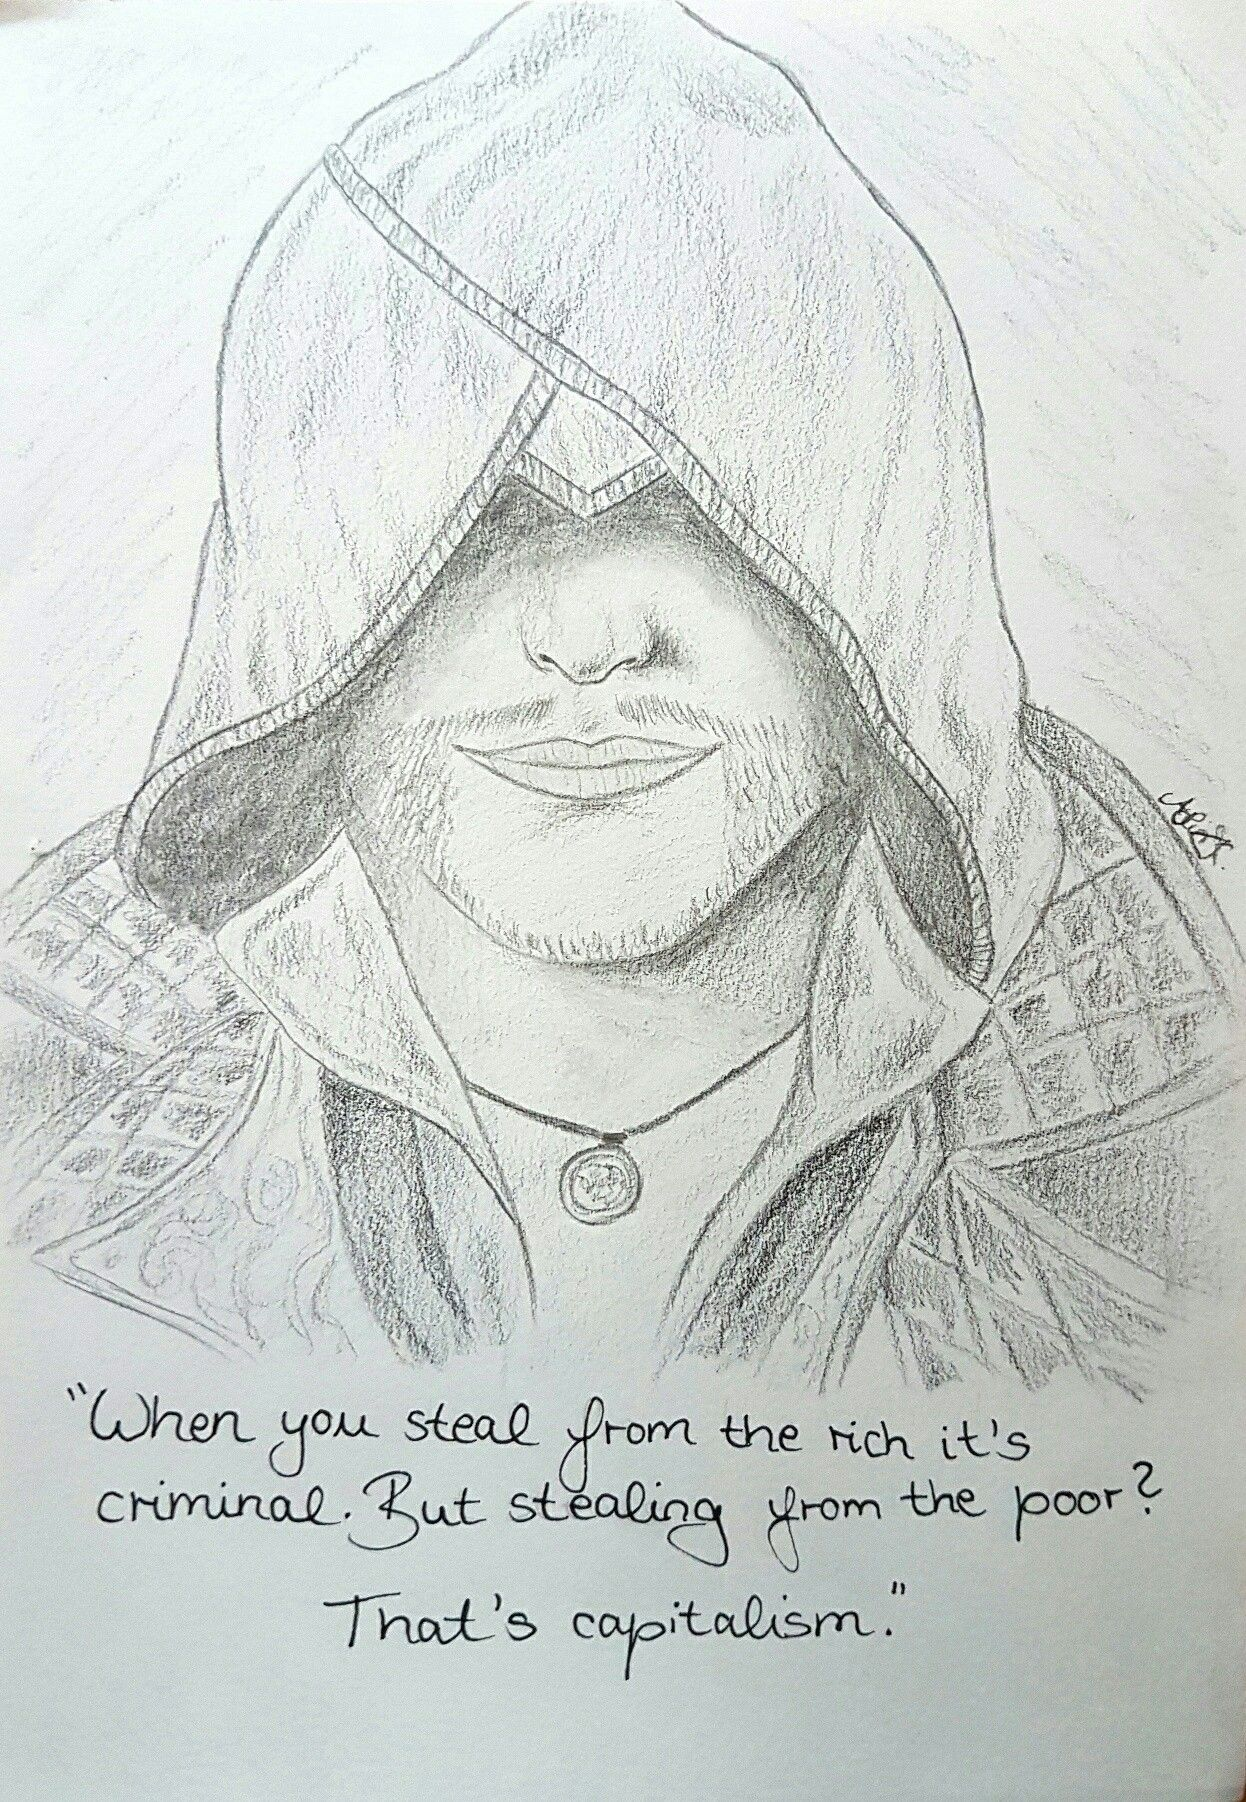 A quick sketch from Jacob Frye (Assassin's Creed: Syndicate)